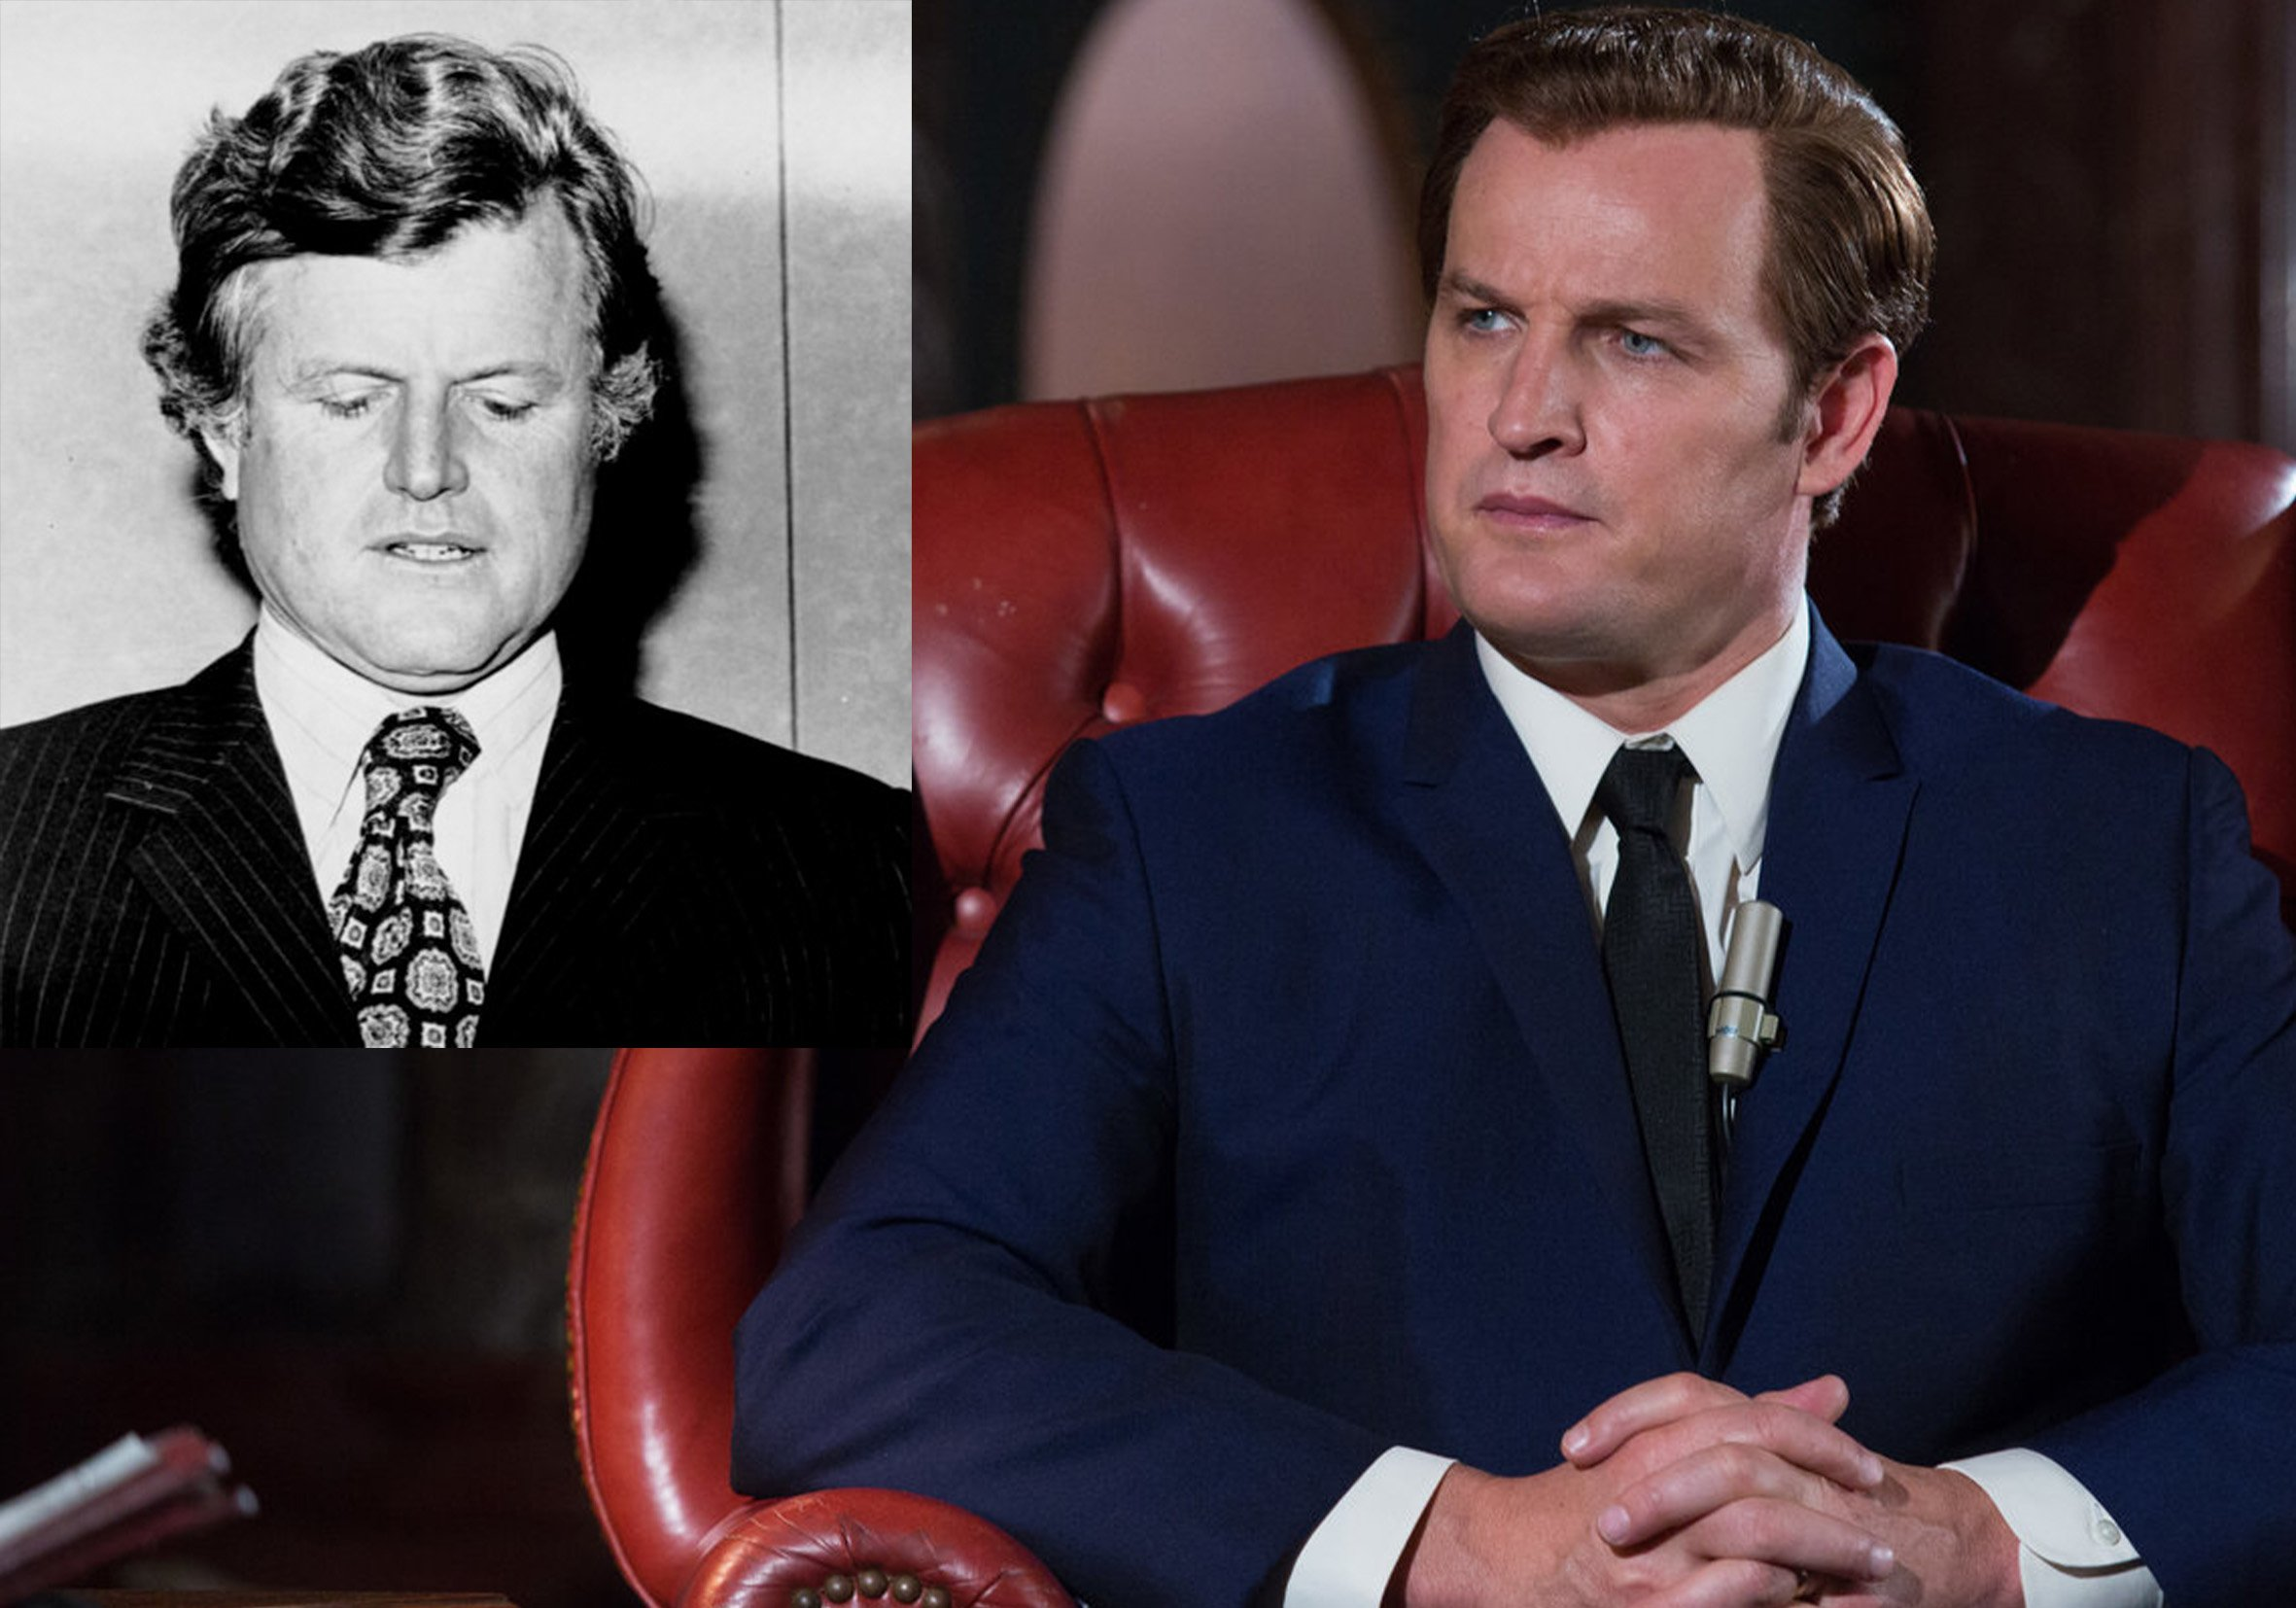 jason clarke ted kennedy 20 Actors Who Looked Exactly Like The Real People They Played